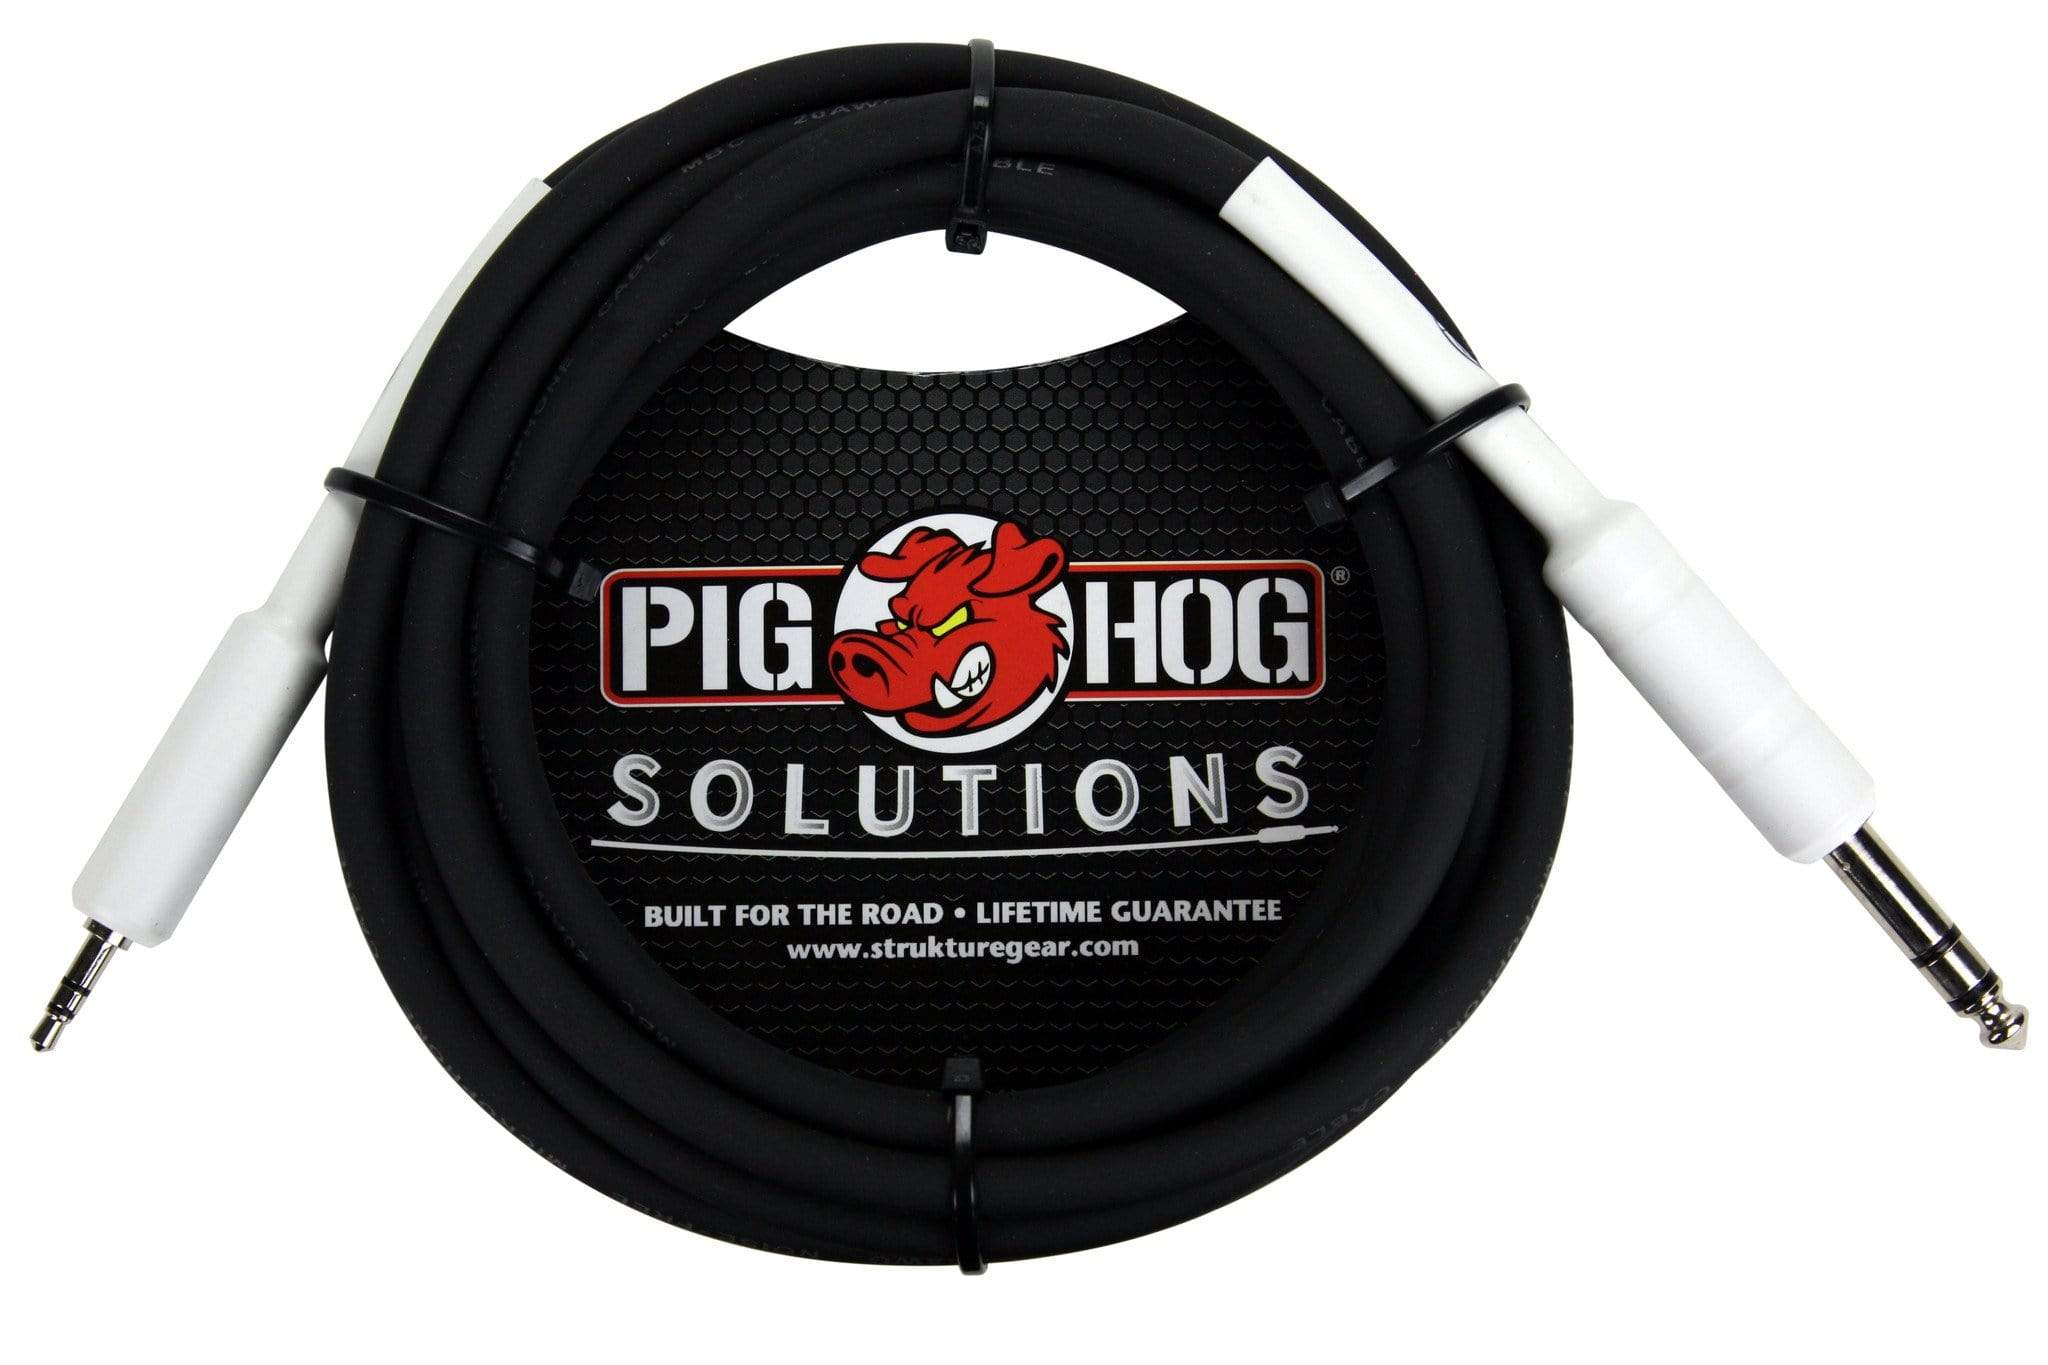 "PIG HOG INTERCONNECT CABLES Pig Hog 6 FT Foot 1/8"" Mini Plug to 1/4"" TRS Plug Cable Stereo MP3 Phone Mixer"